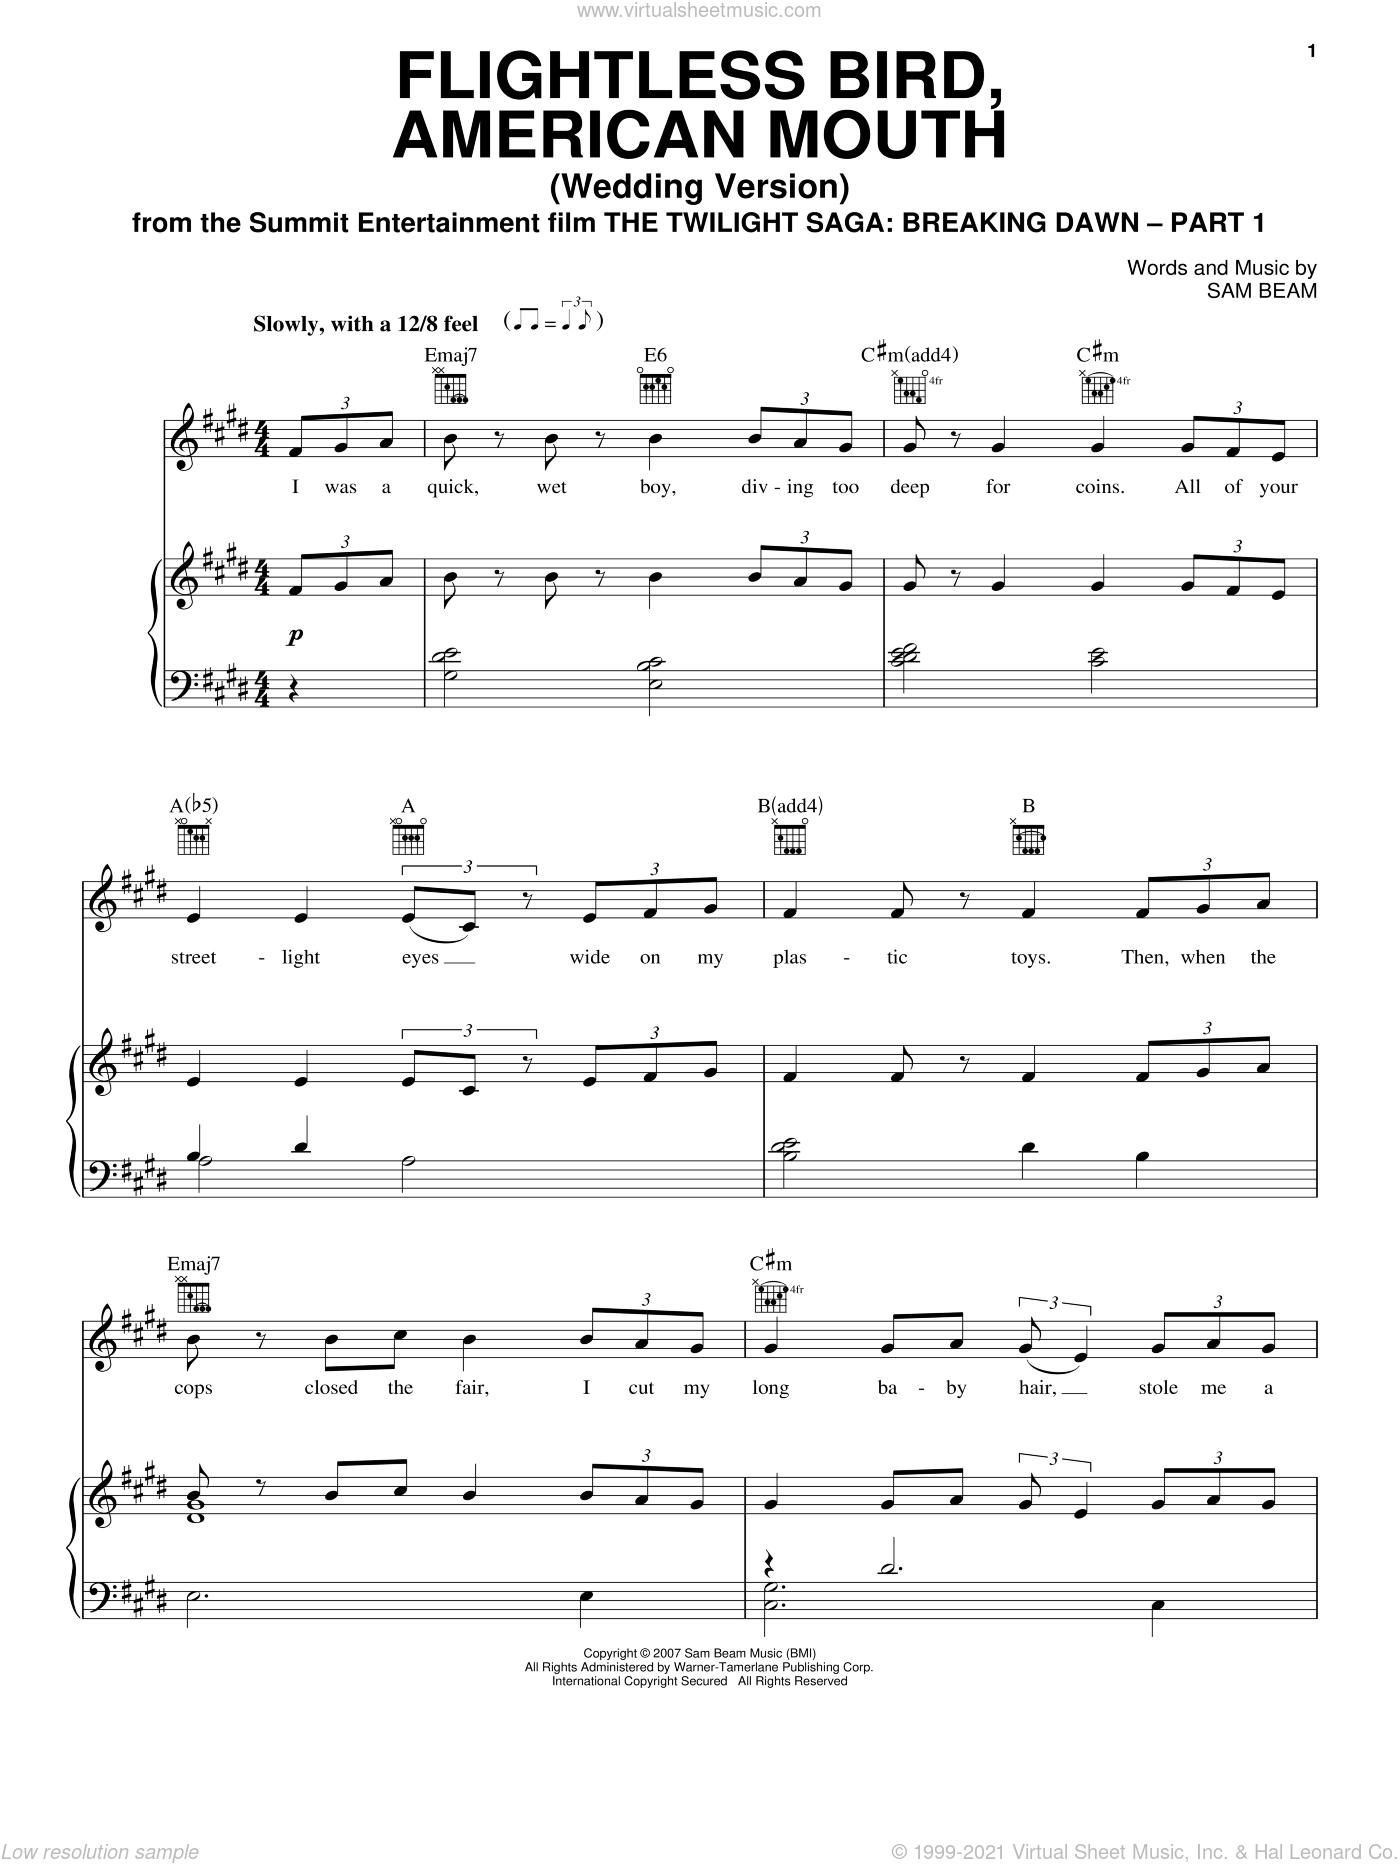 Flightless Bird, American Mouth (Wedding Version) sheet music for voice, piano or guitar by Iron & Wine and Twilight: Breaking Dawn (Movie), intermediate skill level